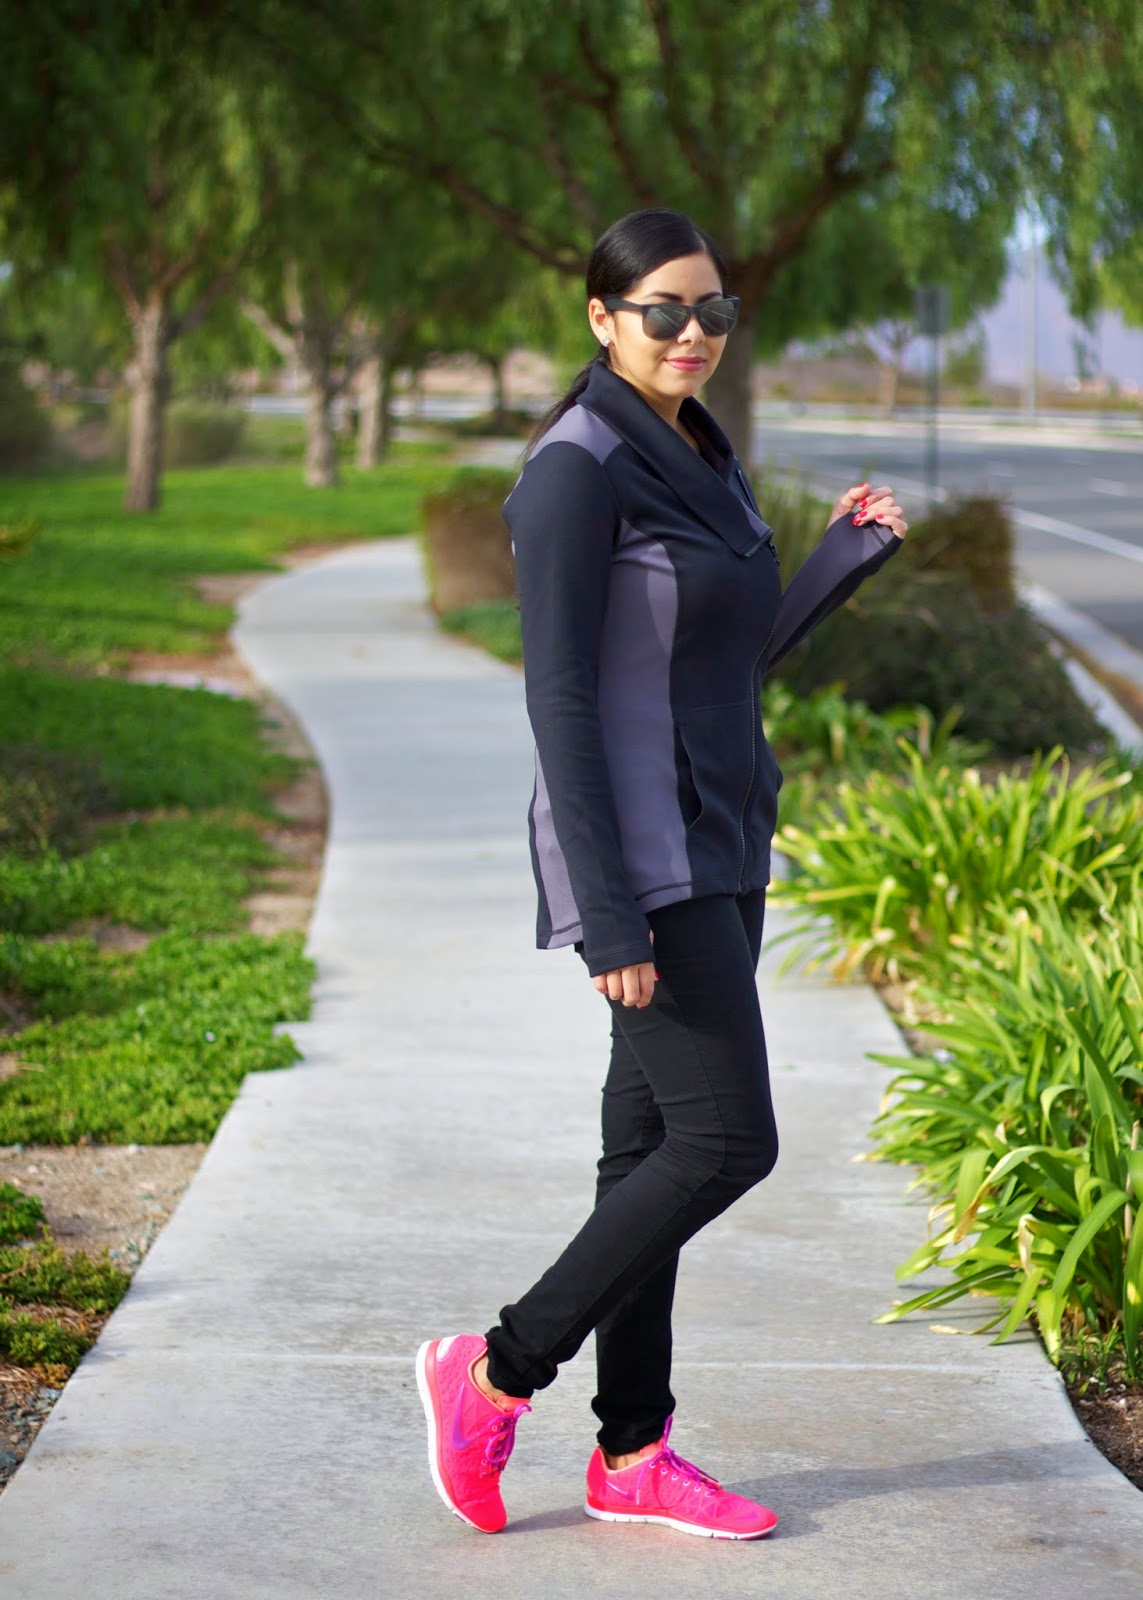 Fashionable athletic wear, gym fashion, casual gym fashion, fashionable casual outfit, Disneyland outfit